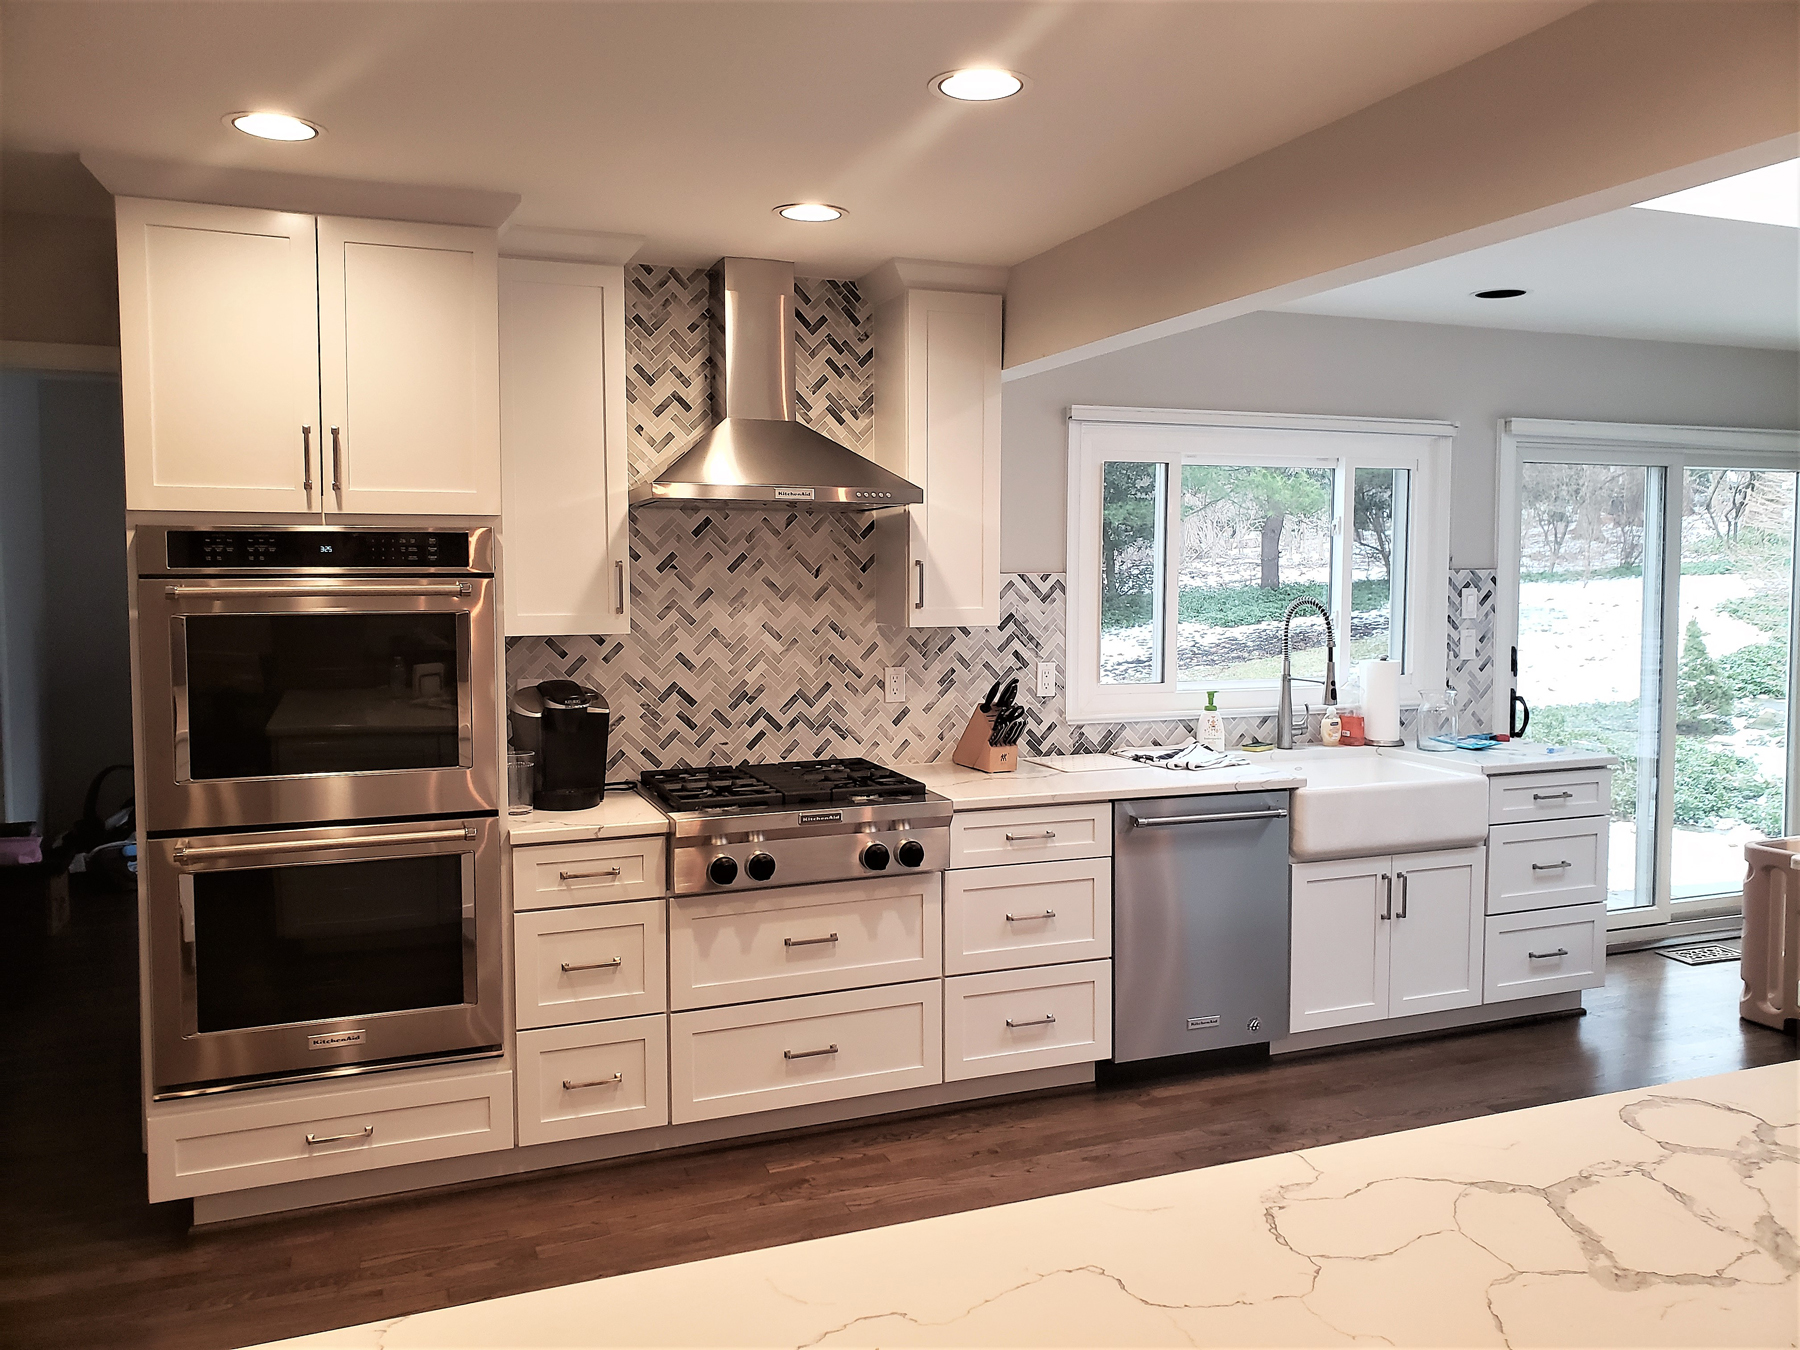 Full Kitchen Remodel with duel ovens in Montgomery County, MD